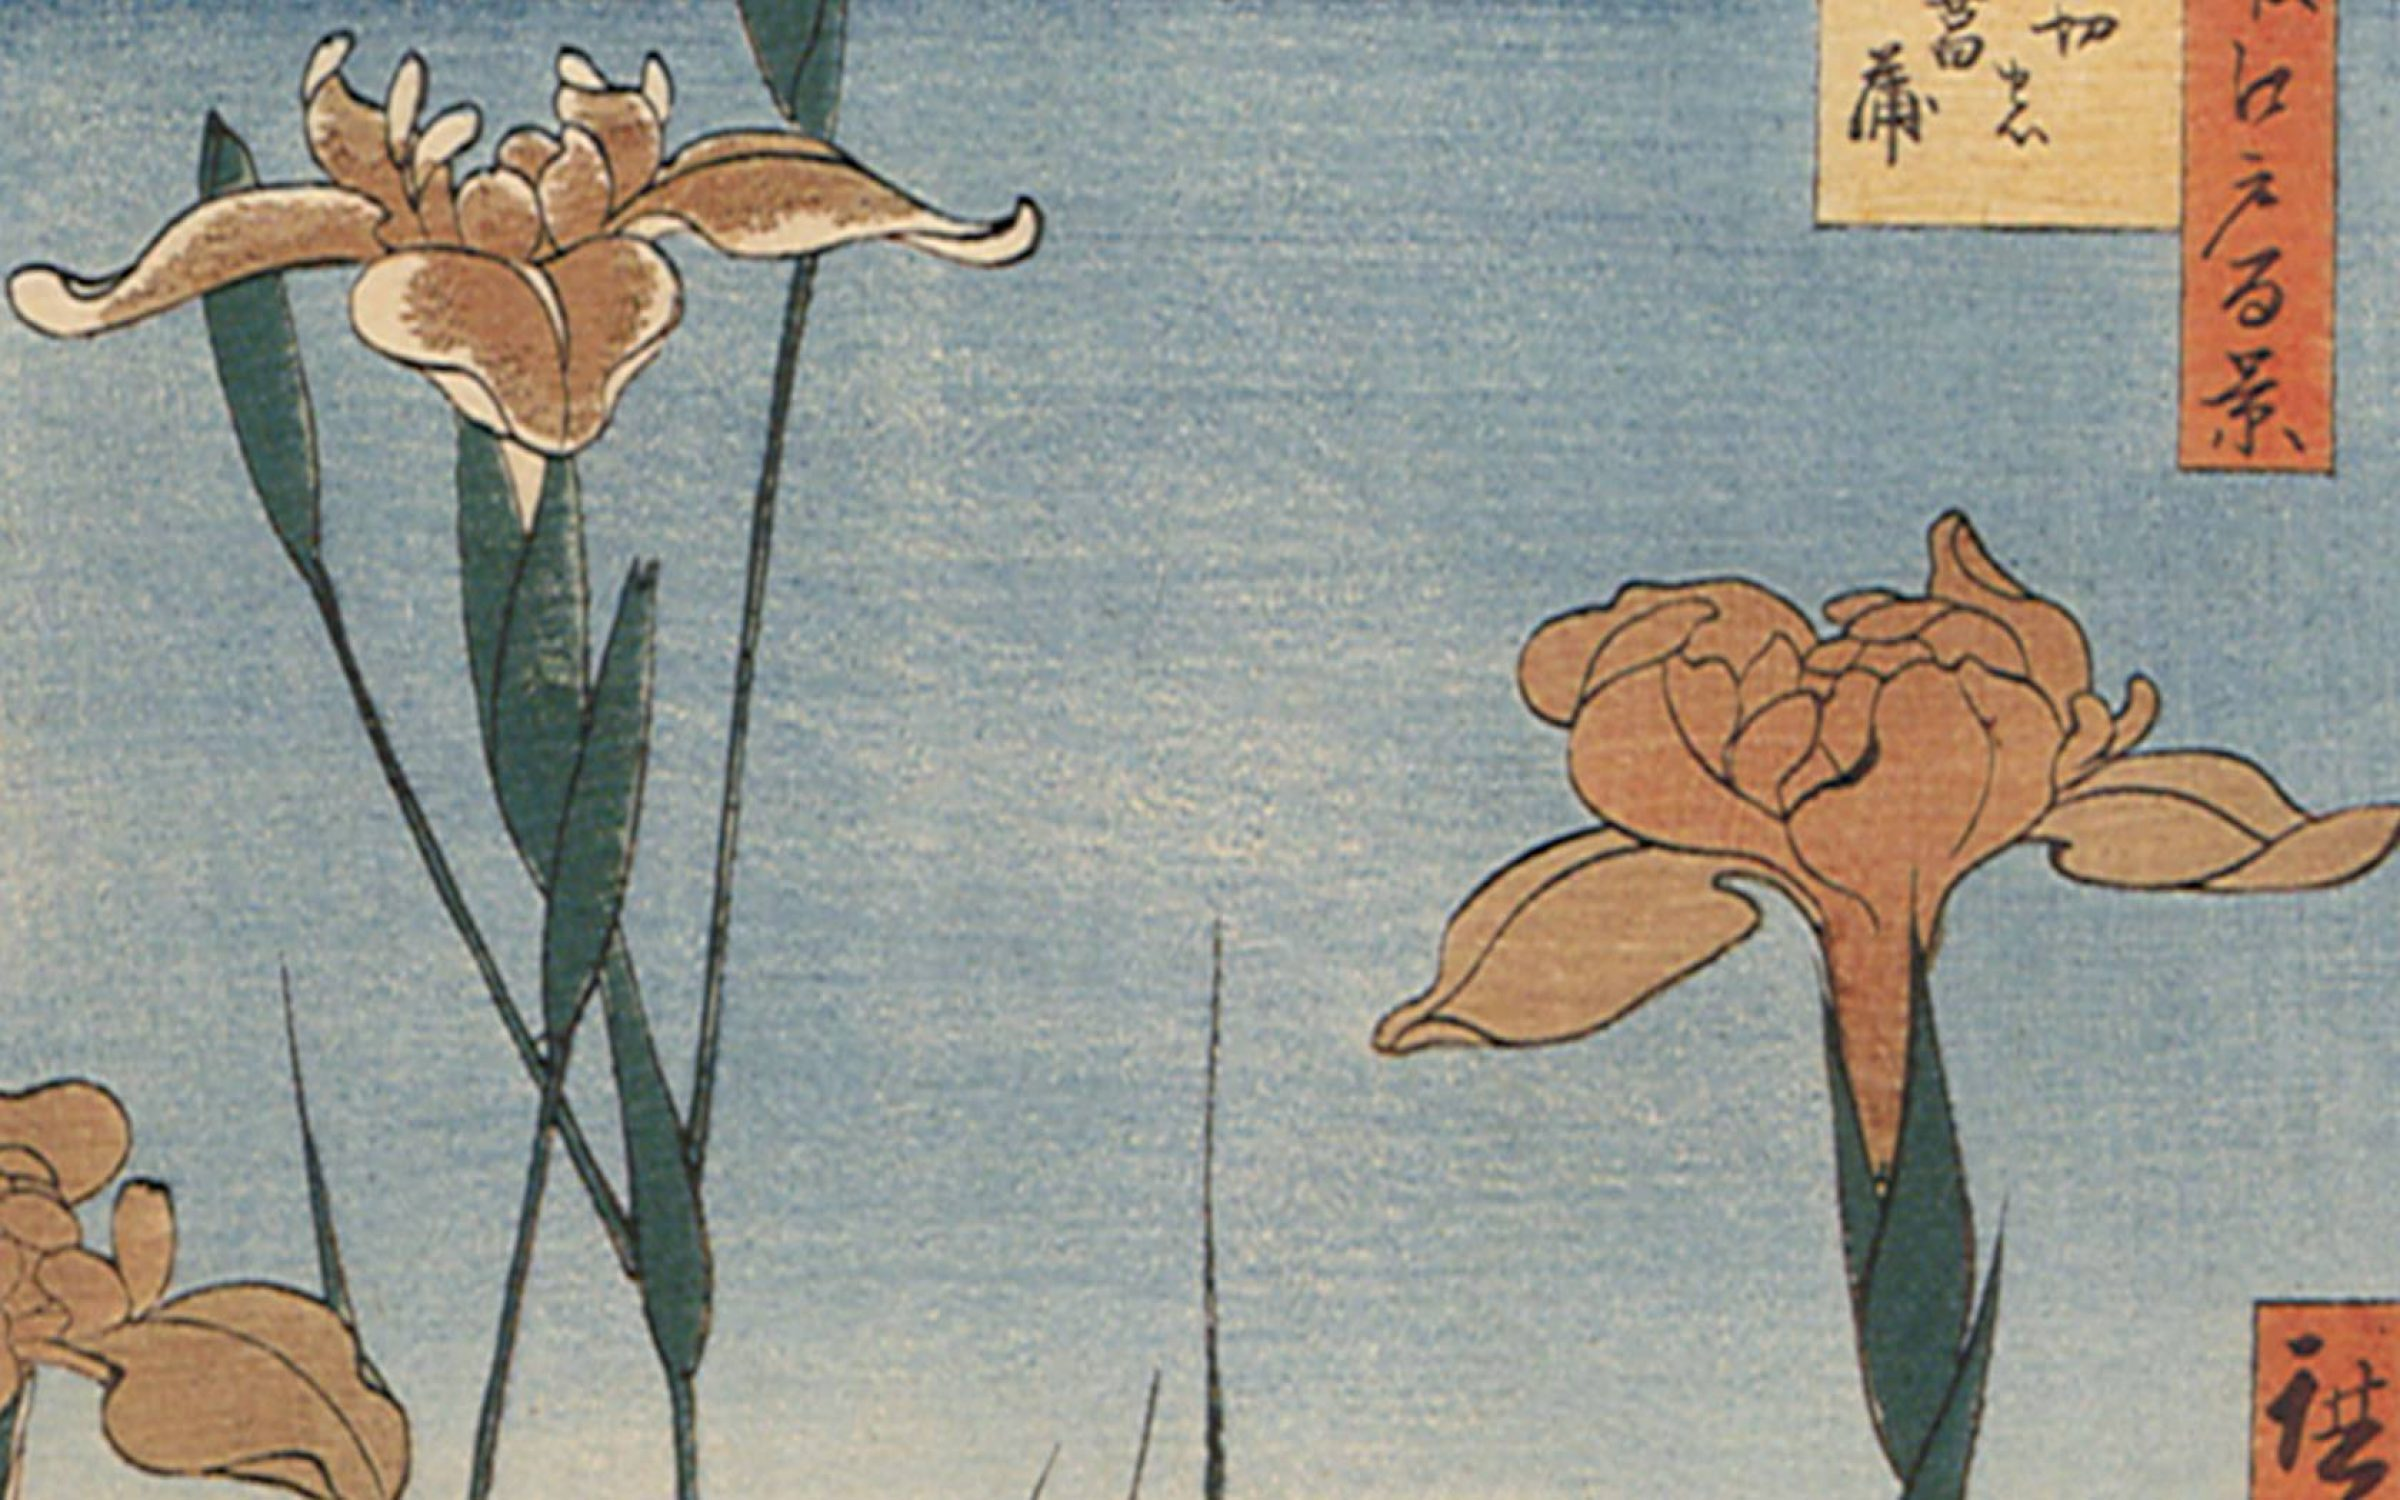 The Iris Gardens by Hiroshige, 1857 . Credit: Picturenow/Universal Images Group via Getty Images